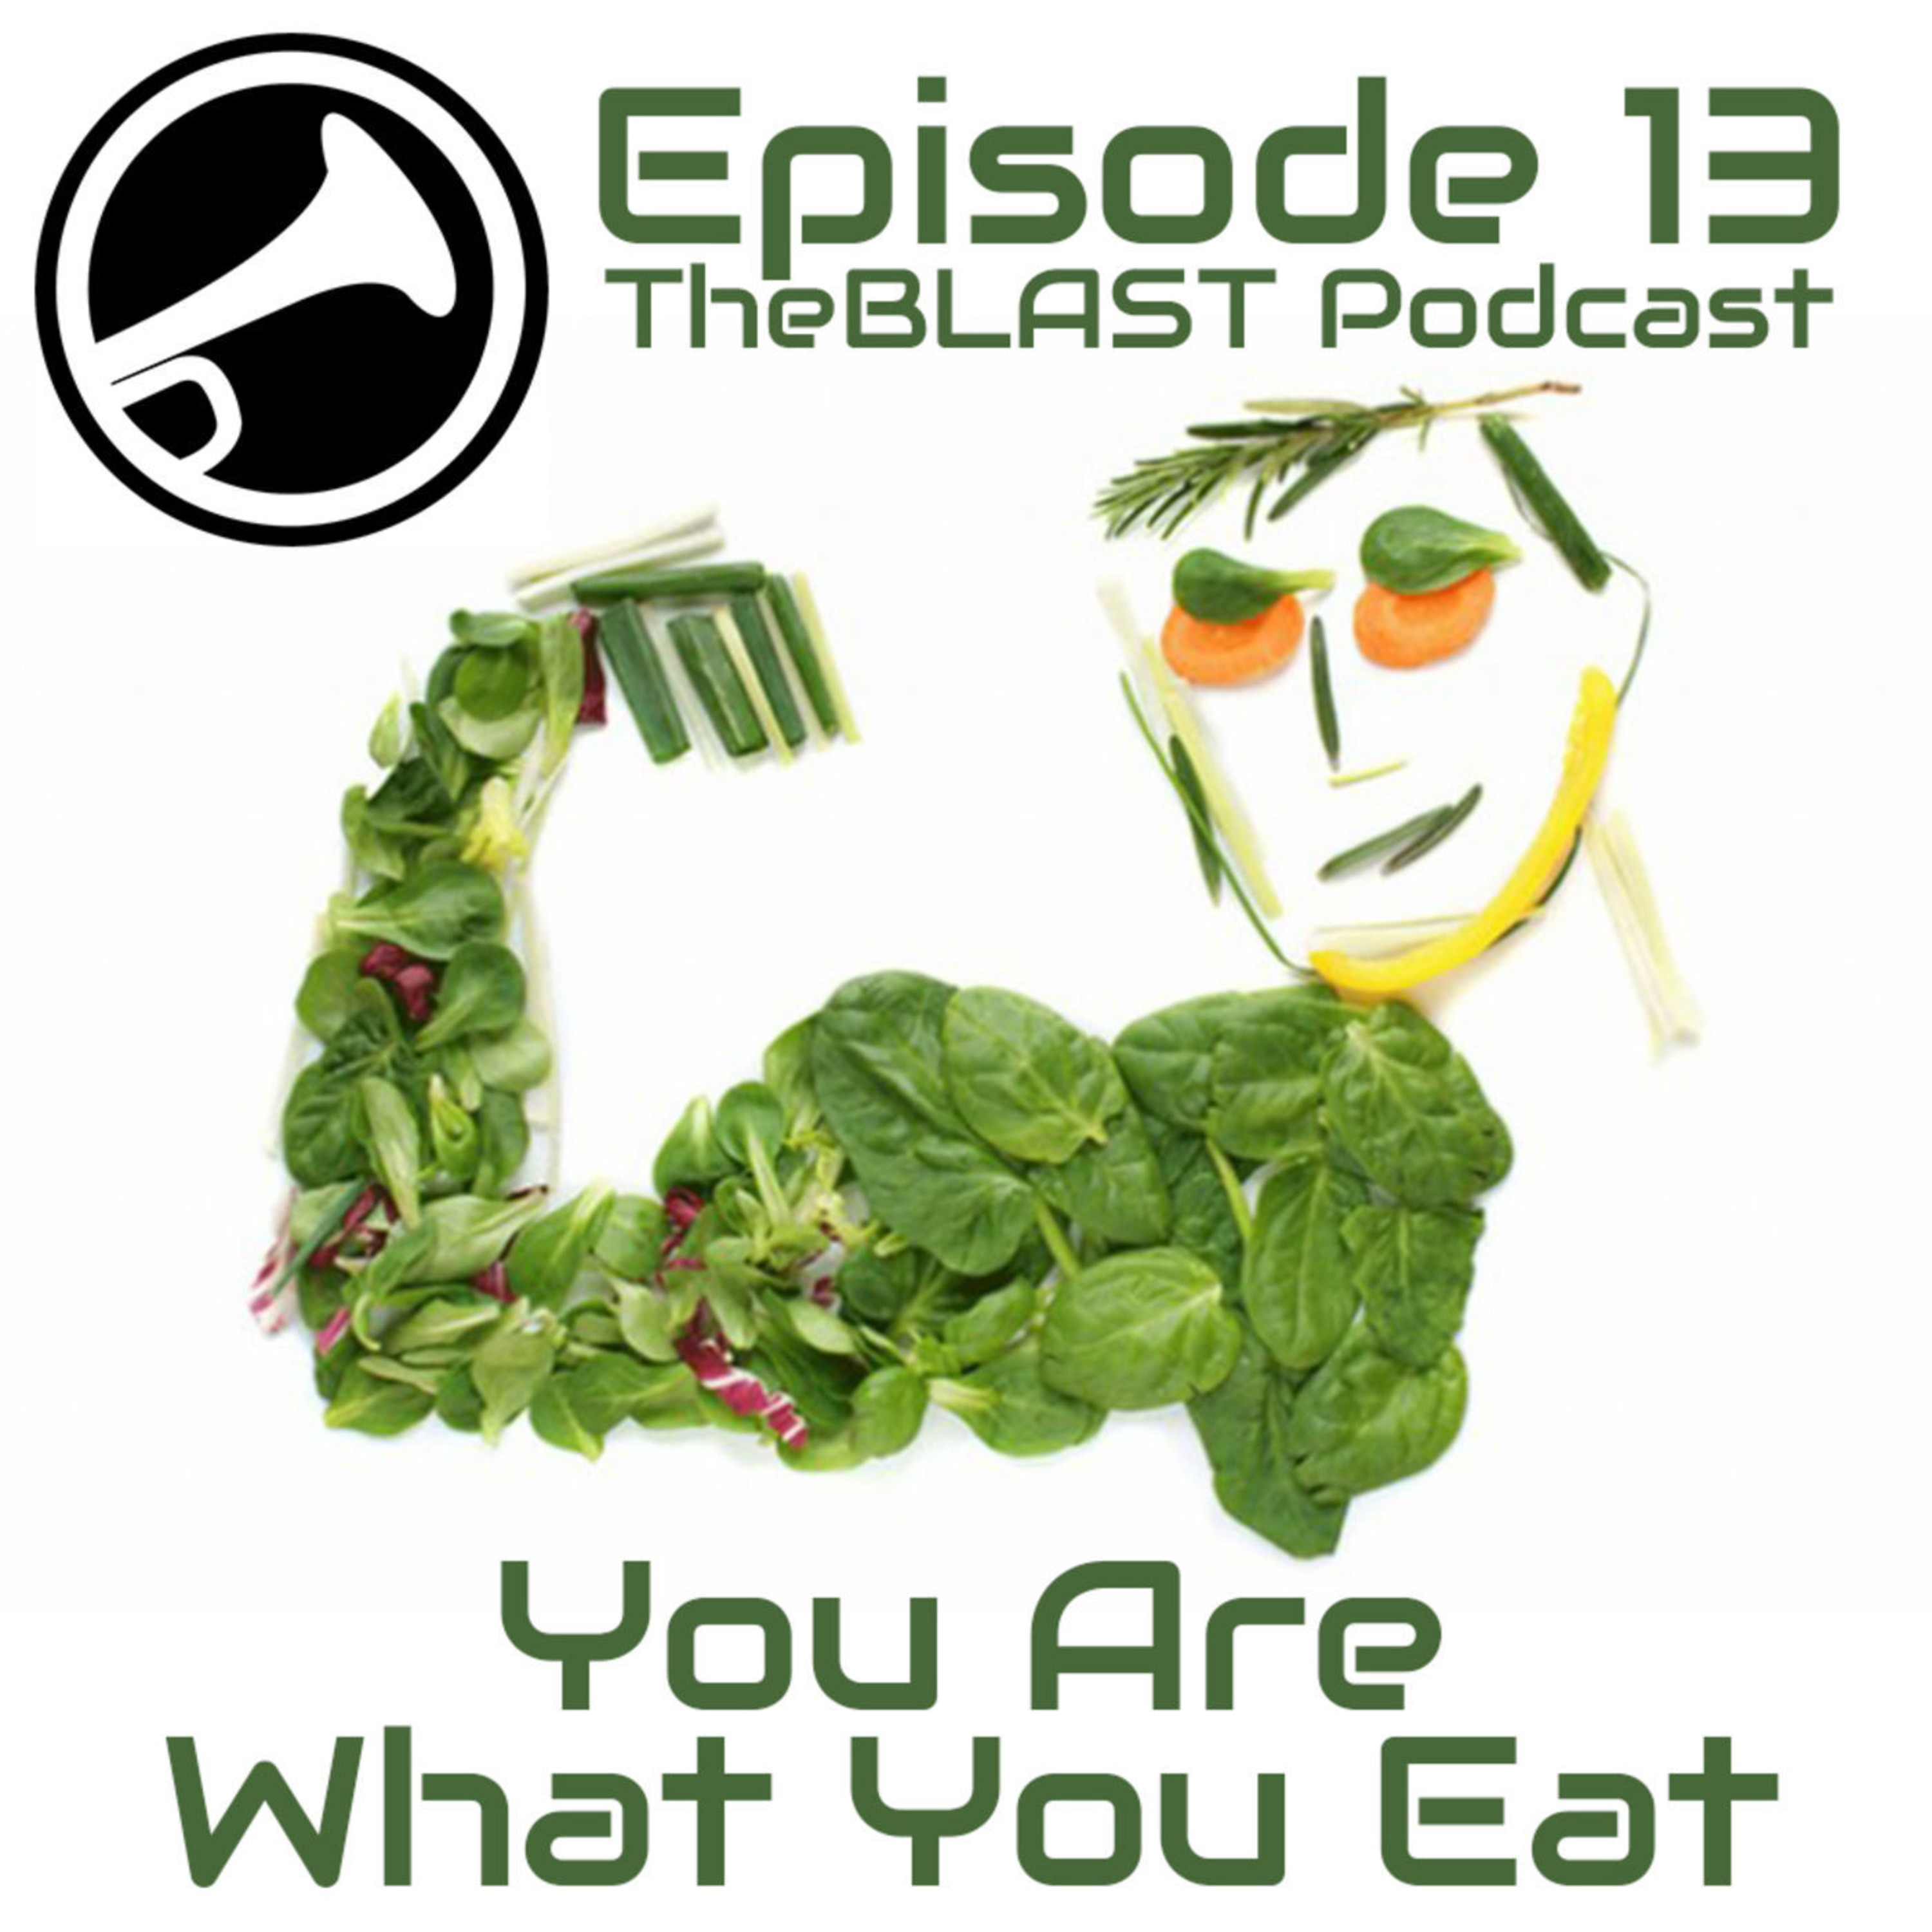 013 – You Are What You Eat: What Do You Put In Your Soul?